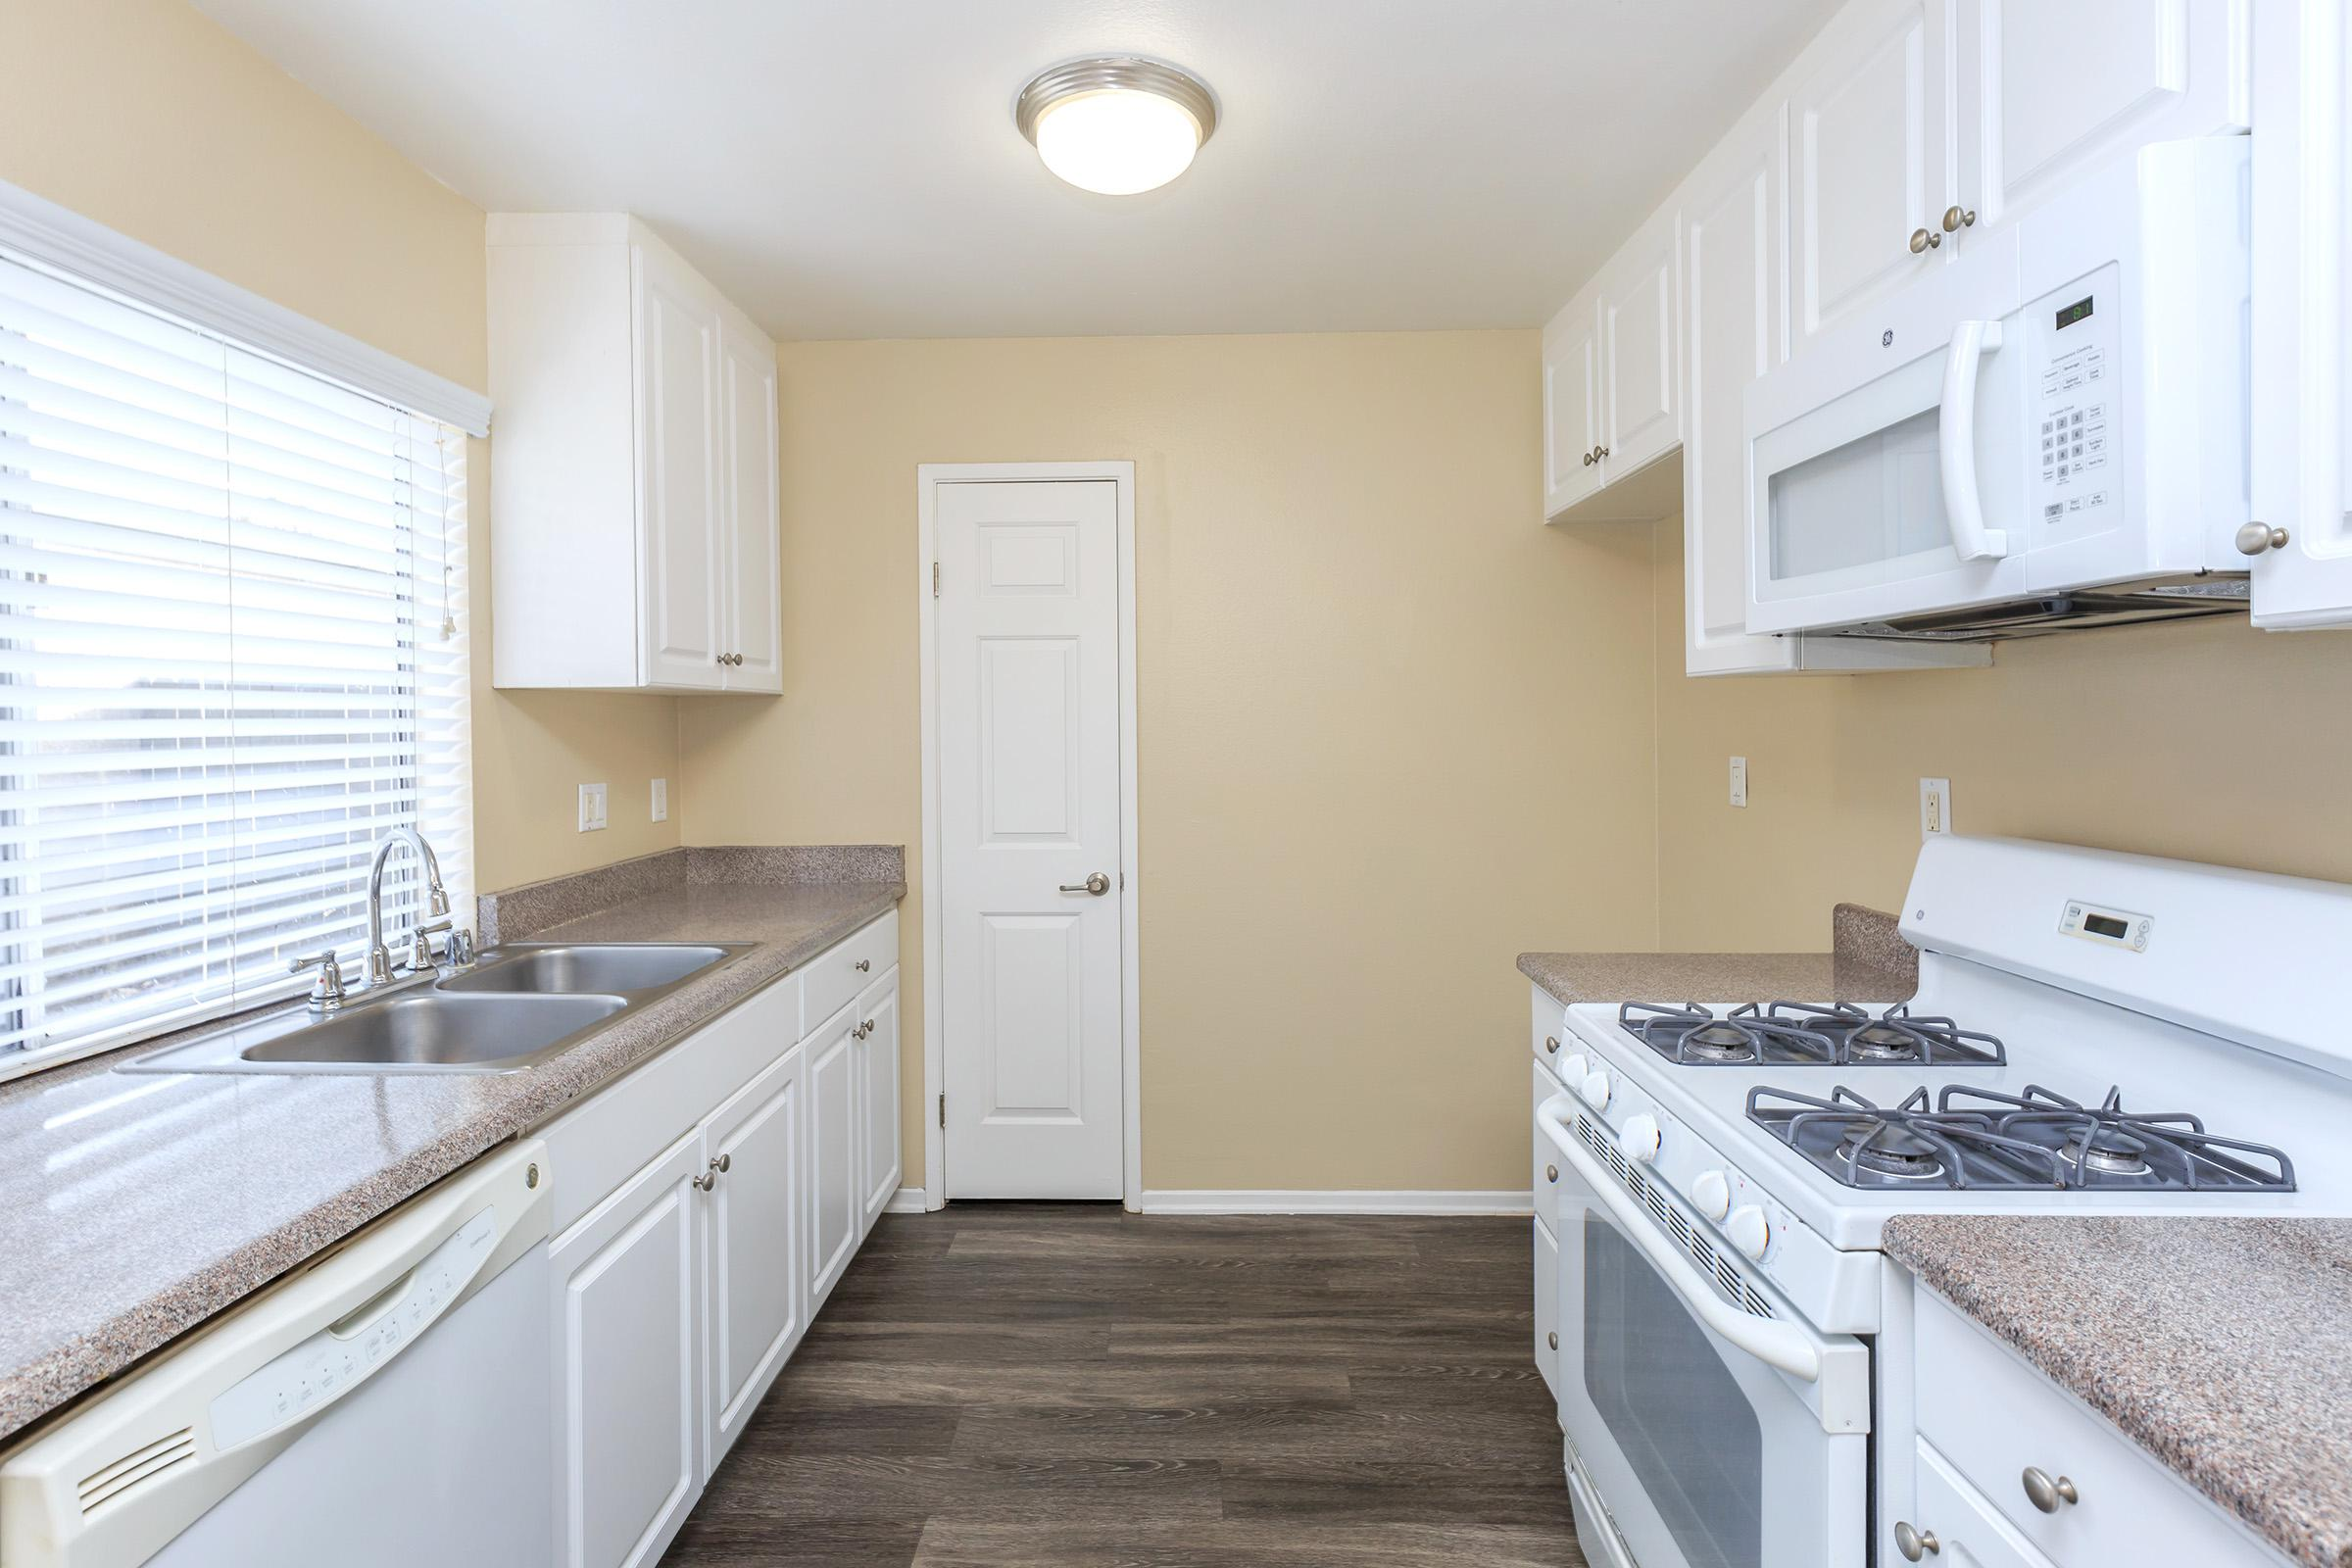 a kitchen with a sink and a bed